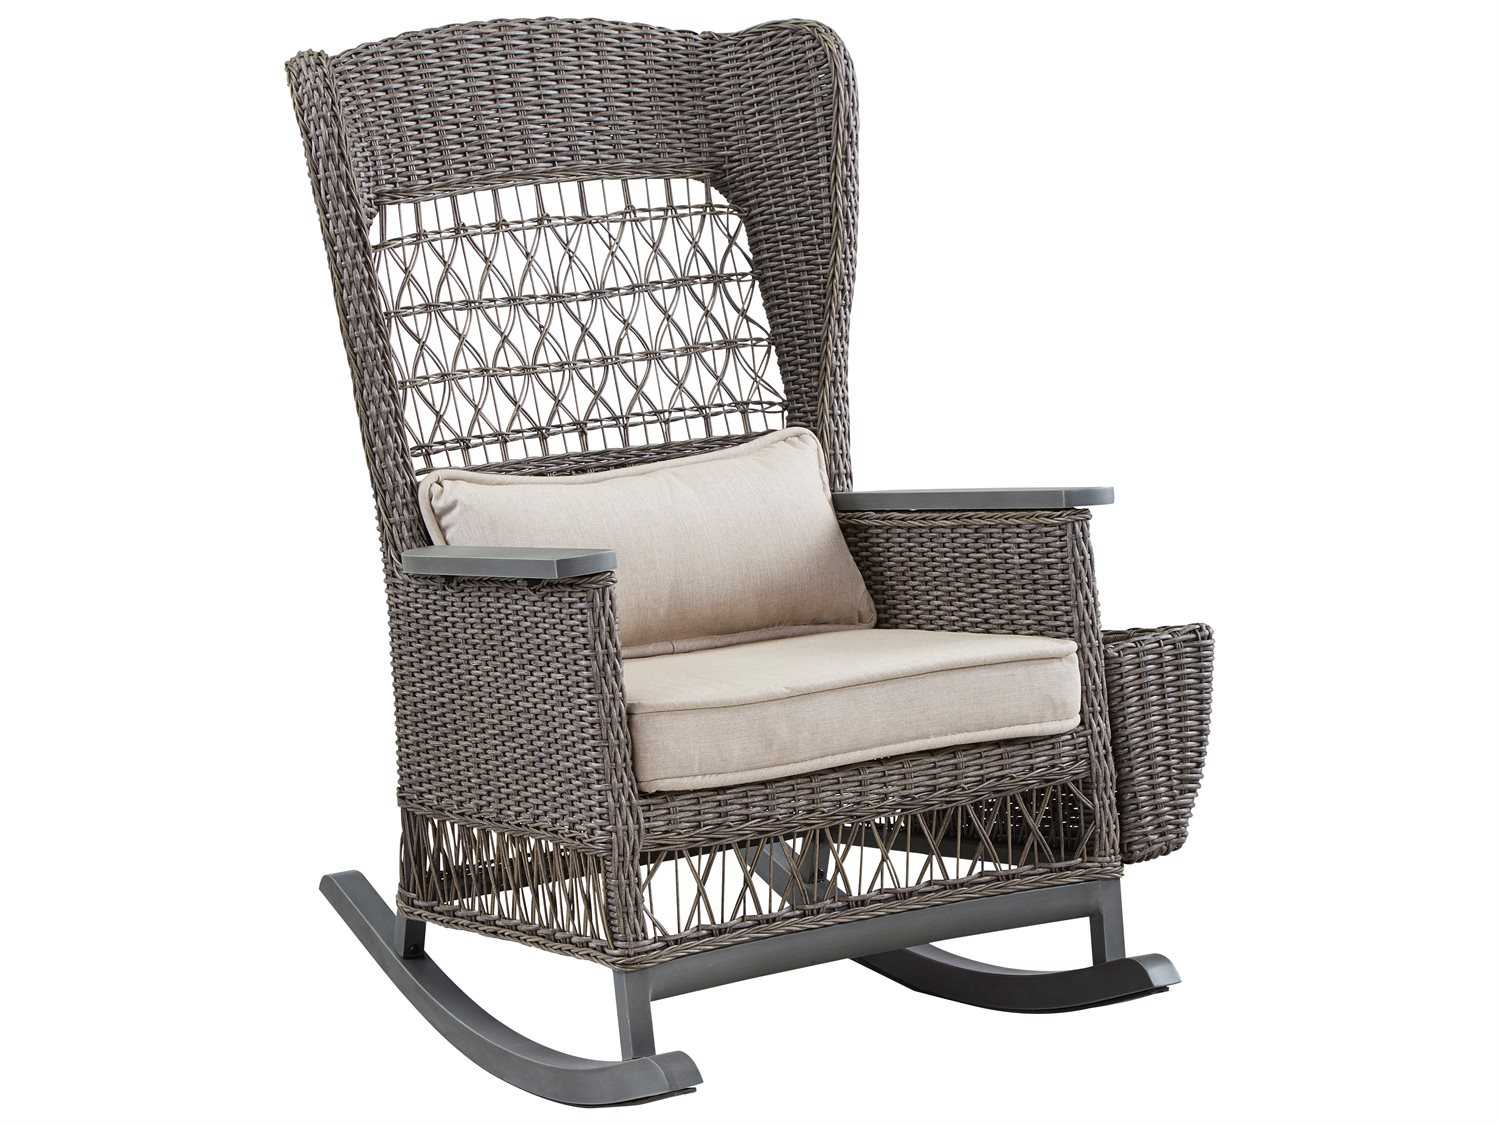 Wicker Rocker Chair Paula Deen Outdoor Dogwood Wicker Rocker Chair With Lumbar